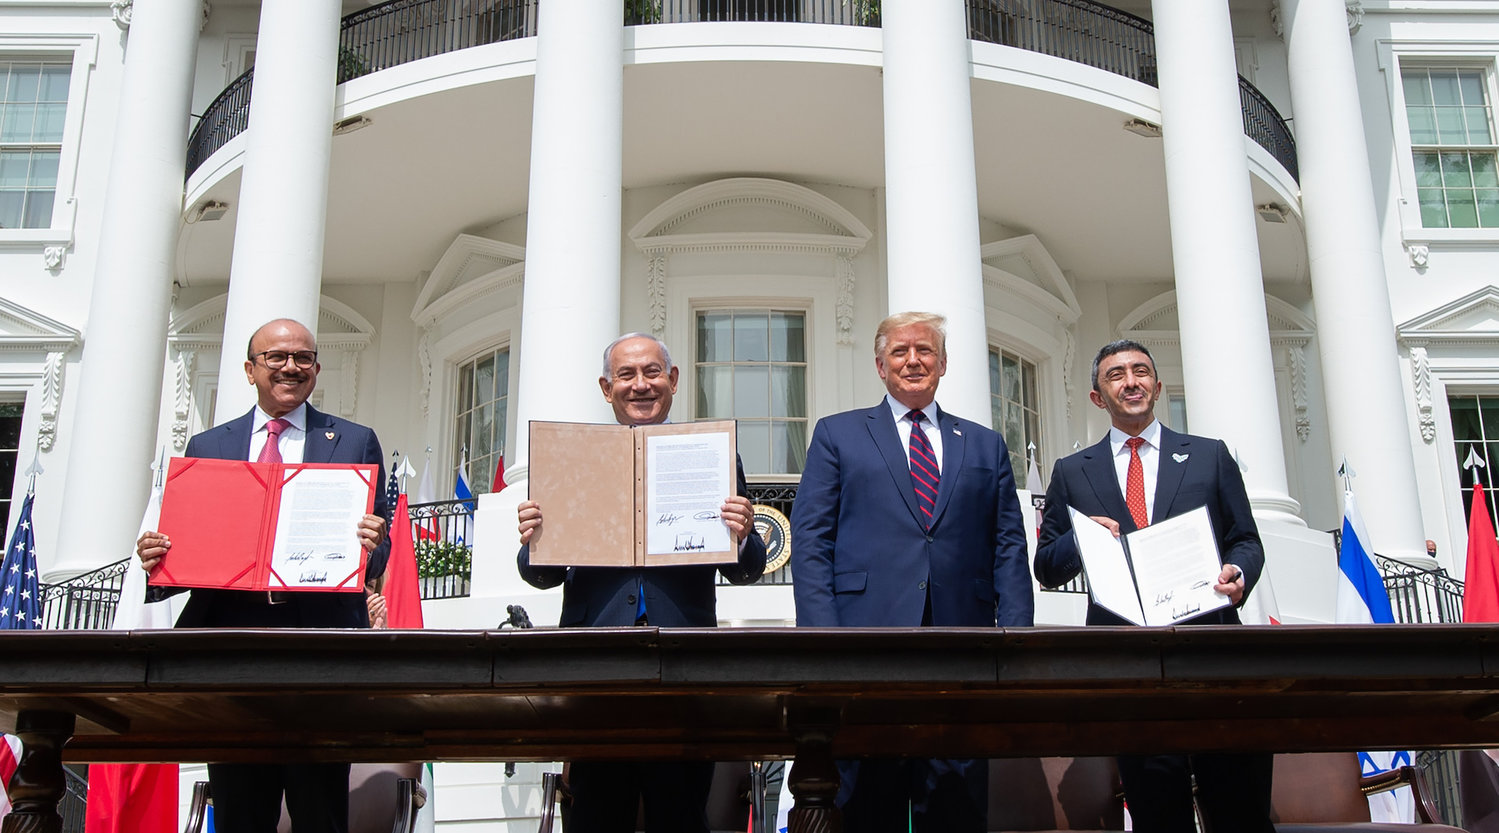 (L-R)Bahrain Foreign Minister Abdullatif al-Zayani, Israeli Prime Minister Benjamin Netanyahu, US President Donald Trump, and UAE Foreign Minister Abdullah bin Zayed Al-Nahyan hold up documents after participating in the signing of the Abraham Accords where the countries of Bahrain and the United Arab Emirates recognize Israel, at the White House in Washington, DC, September 15, 2020. - Israeli Prime Minister Benjamin Netanyahu and the foreign ministers of Bahrain and the United Arab Emirates arrived September 15, 2020 at the White House to sign historic accords normalizing ties between the Jewish and Arab states. (Photo by SAUL LOEB / AFP) (Photo by SAUL LOEB/AFP via Getty Images)